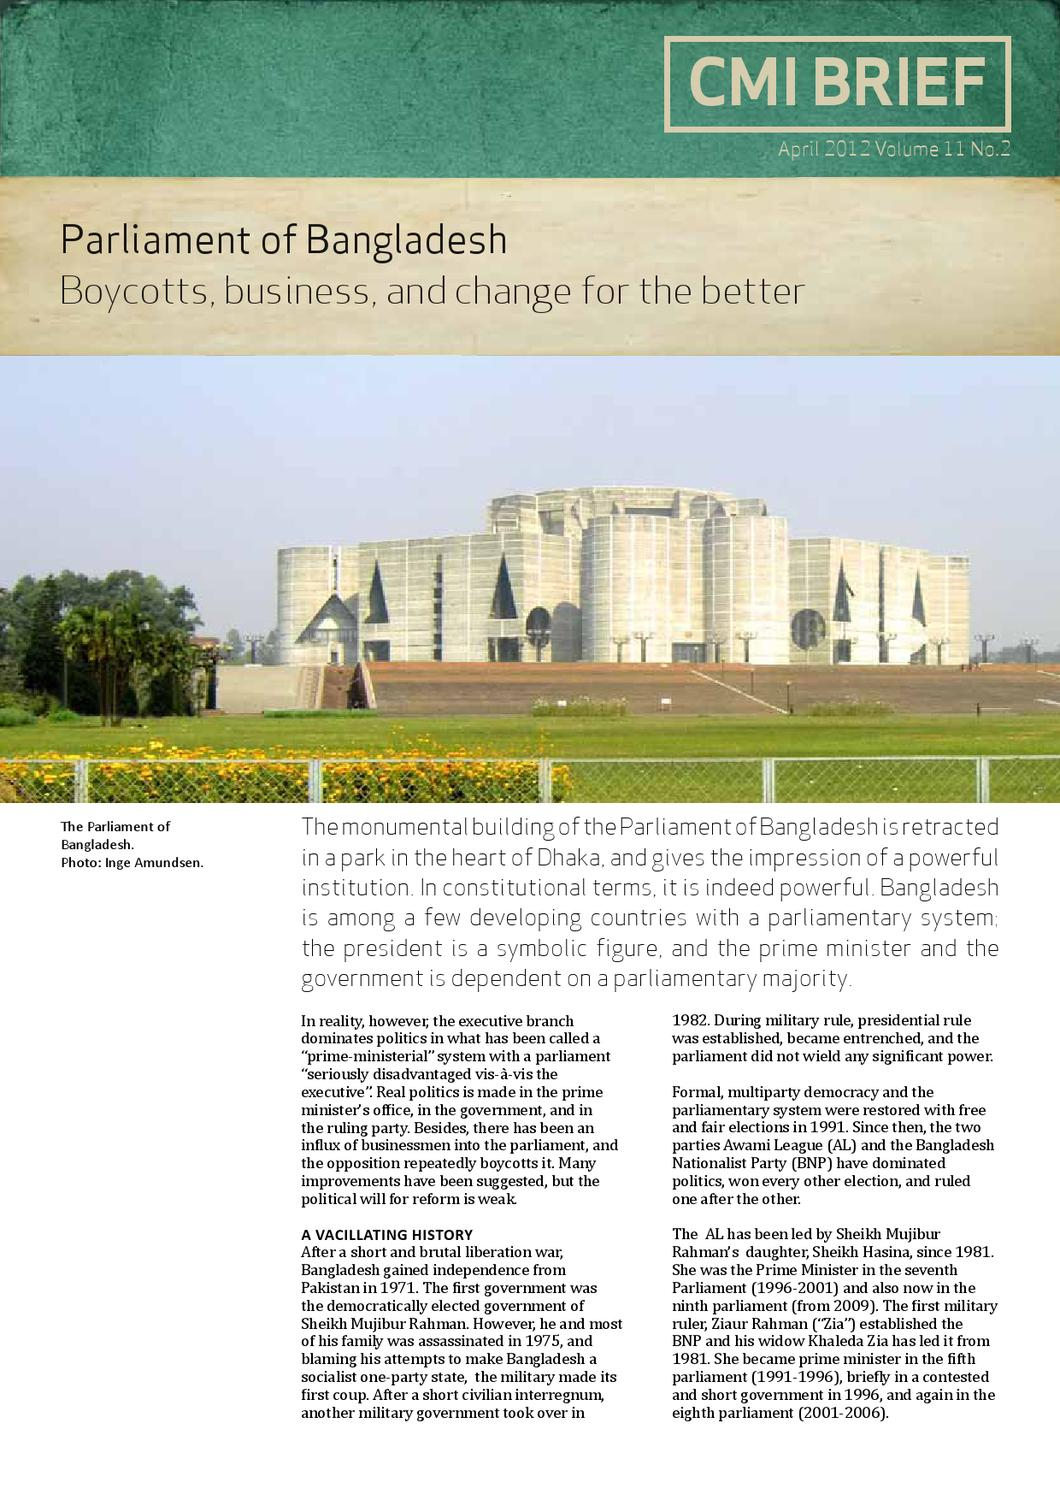 Parliament of Bangladesh: Boycotts, business, and change for